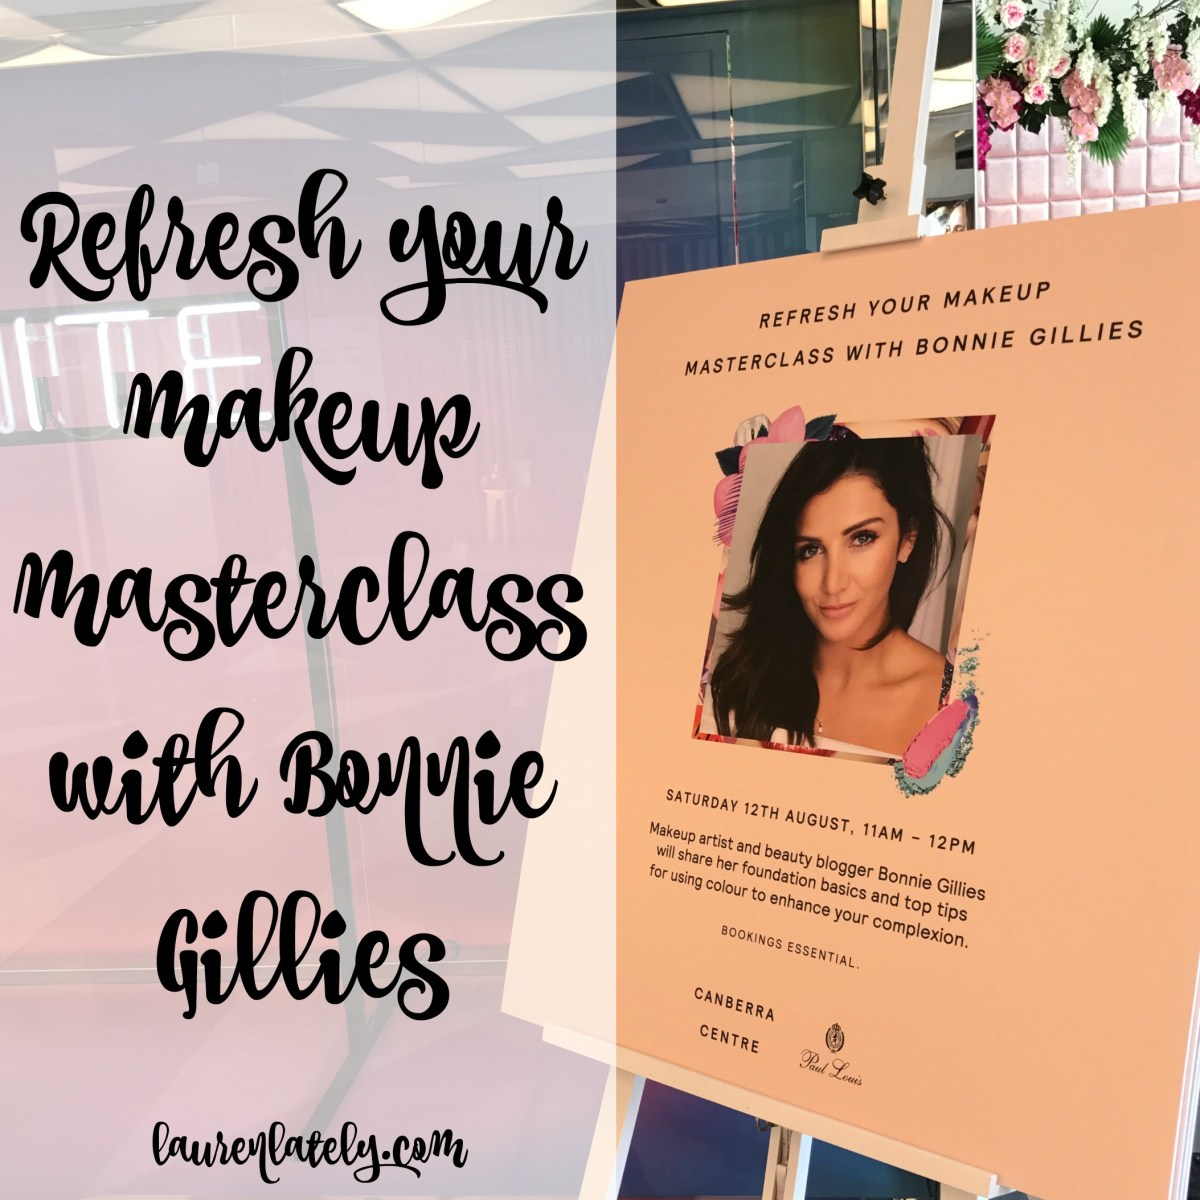 Refresh your makeup masterclass with Bonnie Gillies